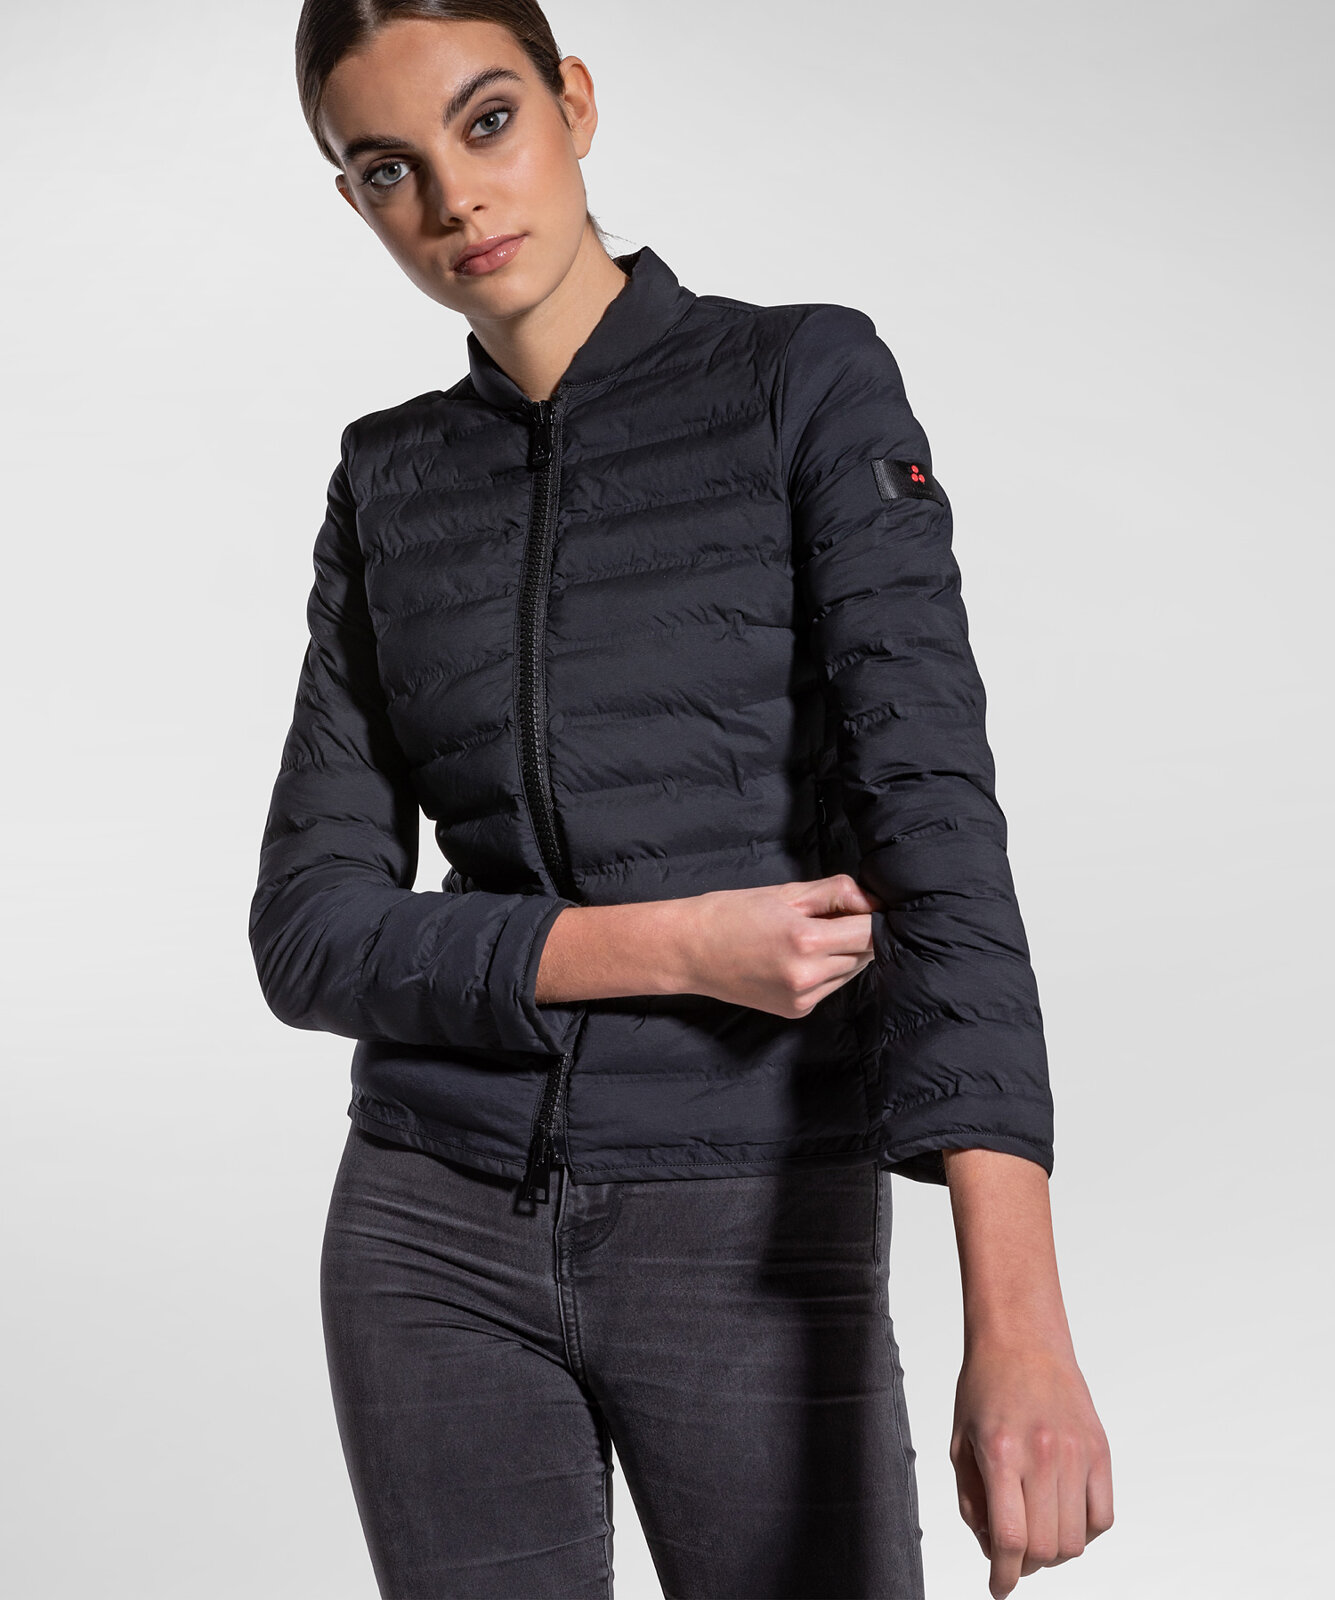 Down Jacket In Stretch Jacquard And Sporty Chic - Peuterey